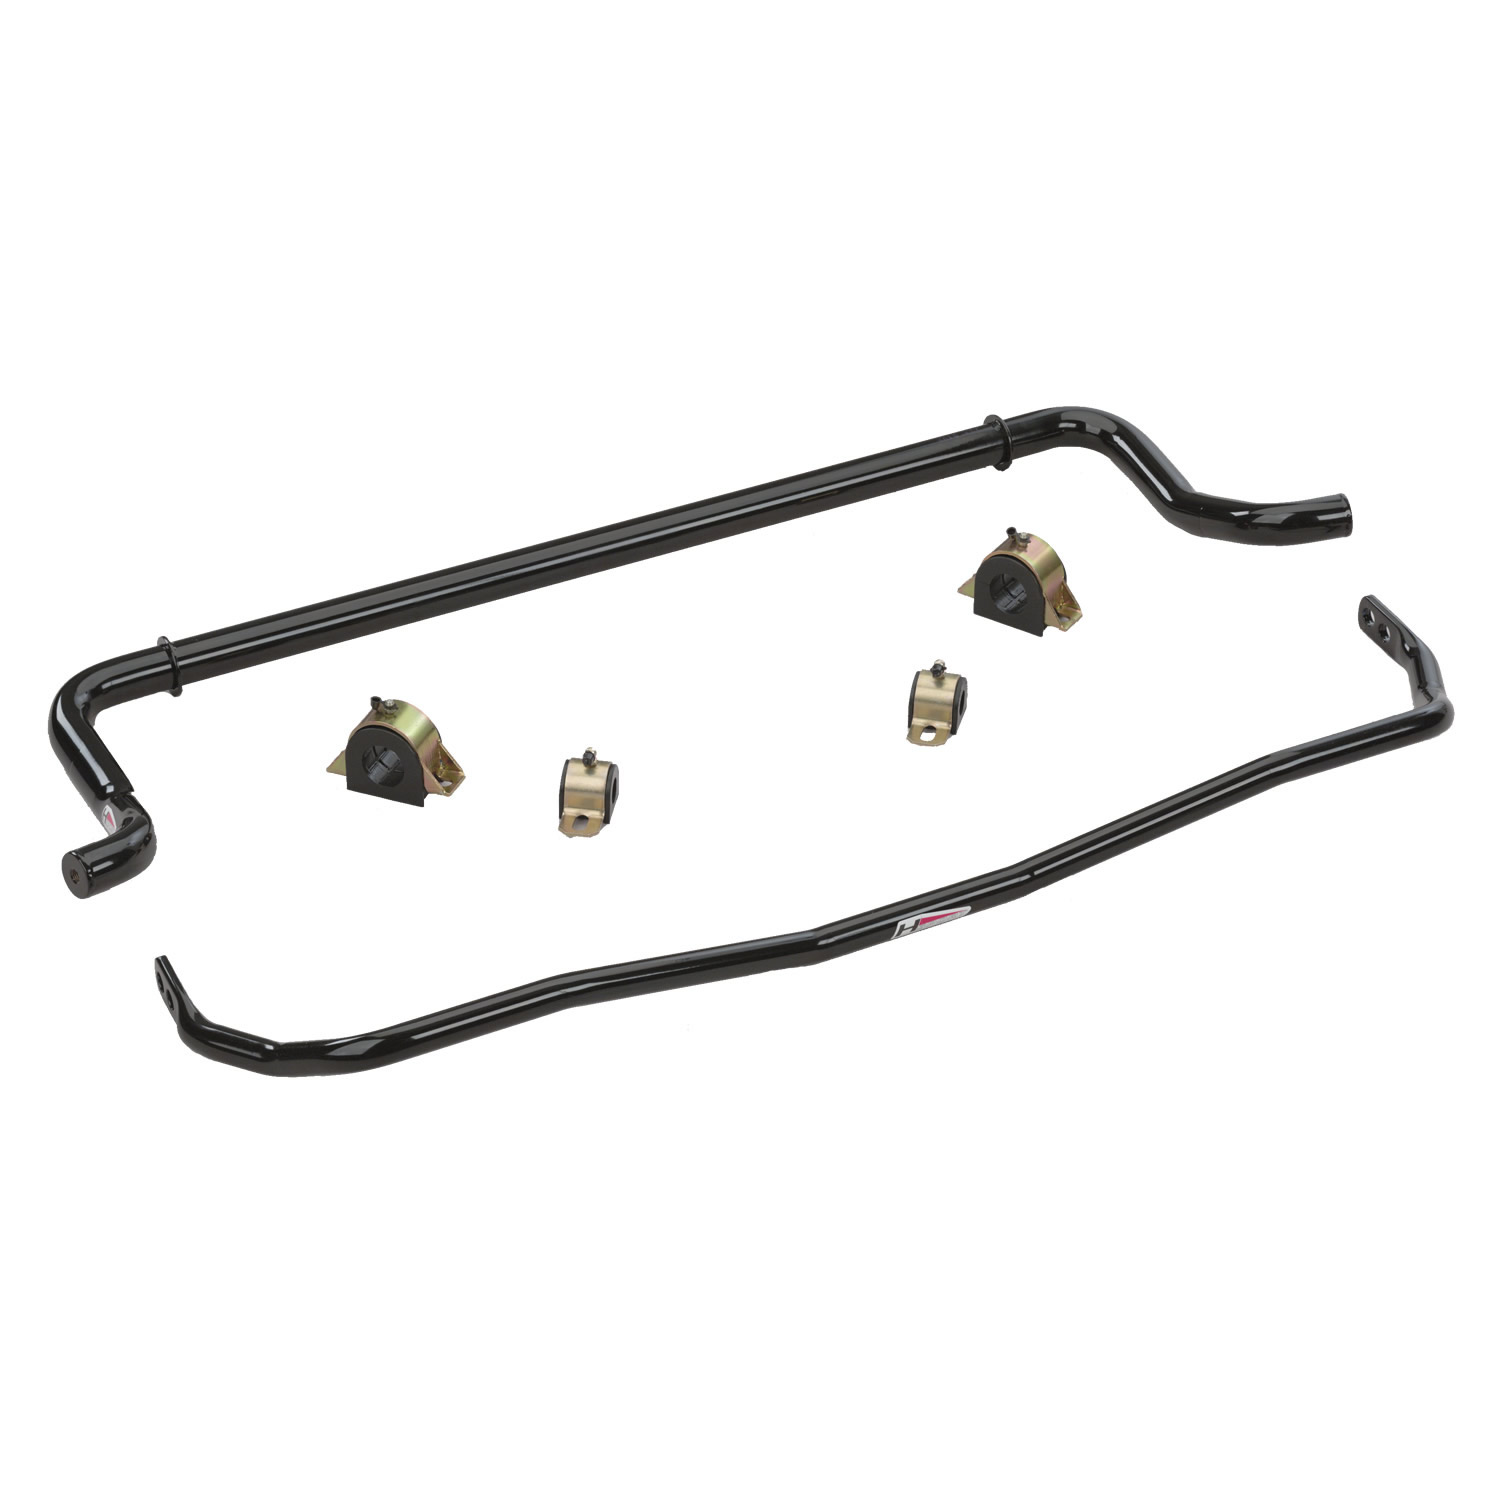 Hotchkis Sport Suspension Systems Parts And Complete Bolt In Packages Blog Archive Audi A4